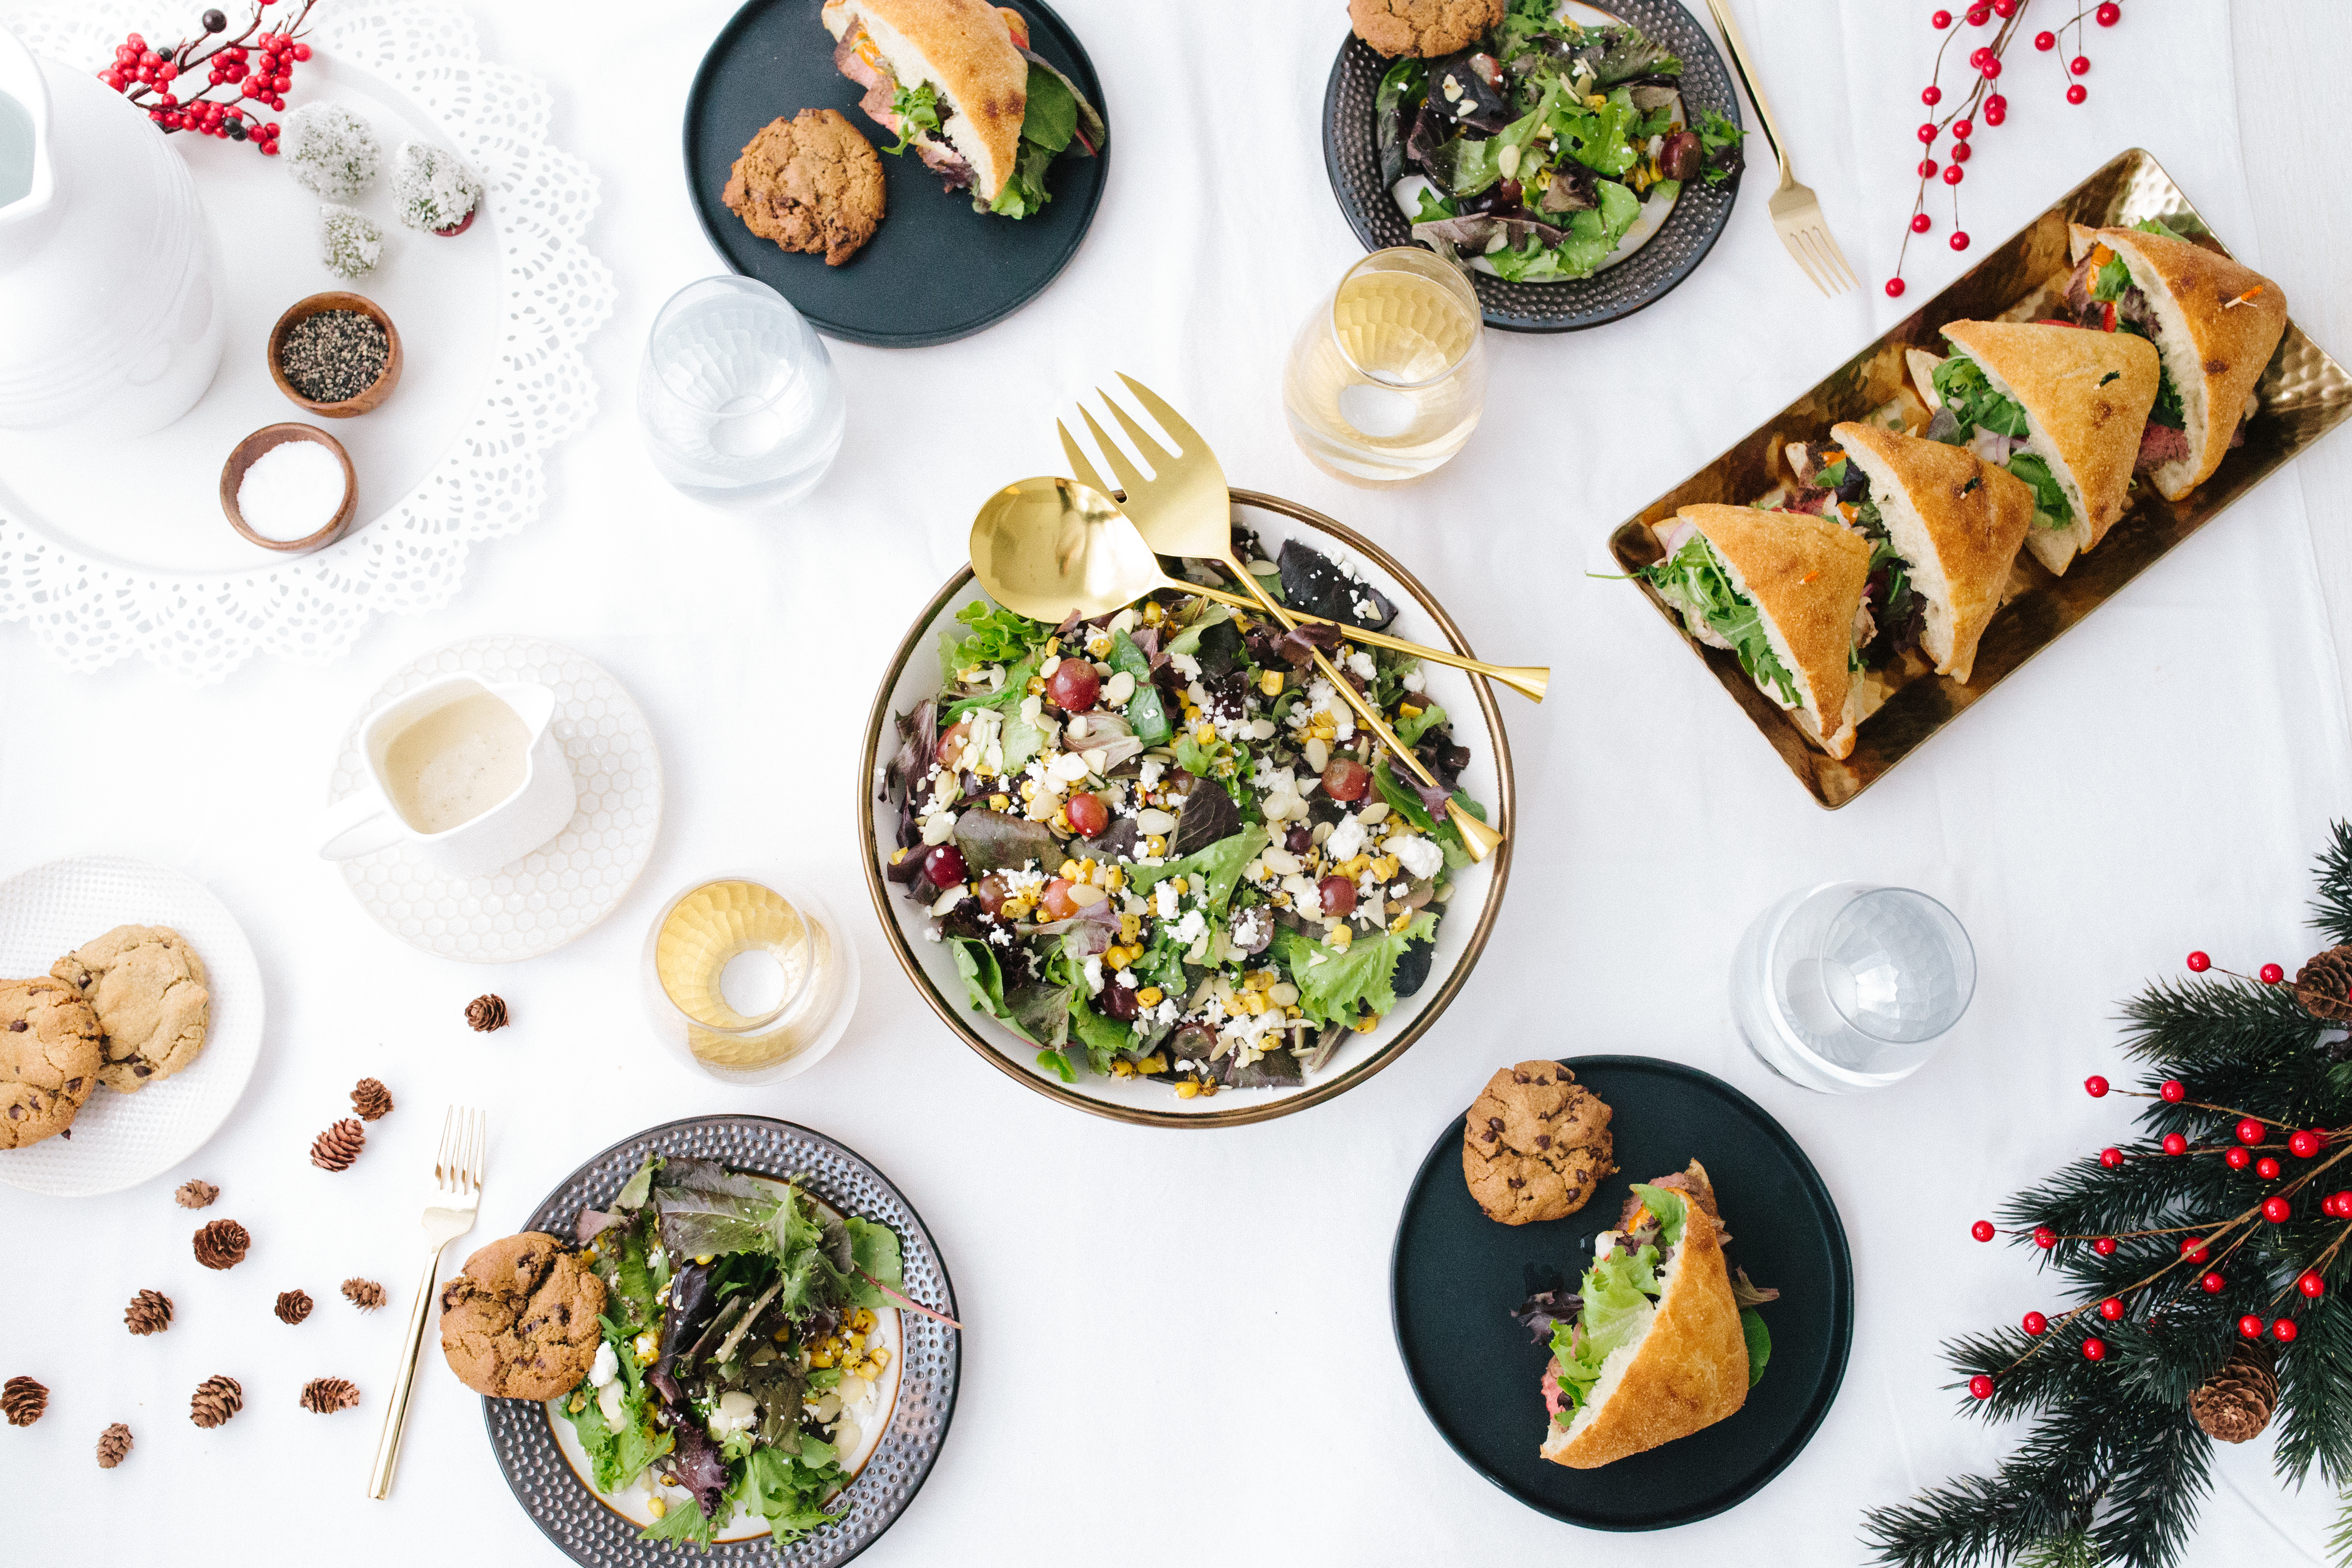 Here in Denver, some of the best restaurants cater, and they're more than ready to feed your team; they deliver the holiday catering you'll want all season long.